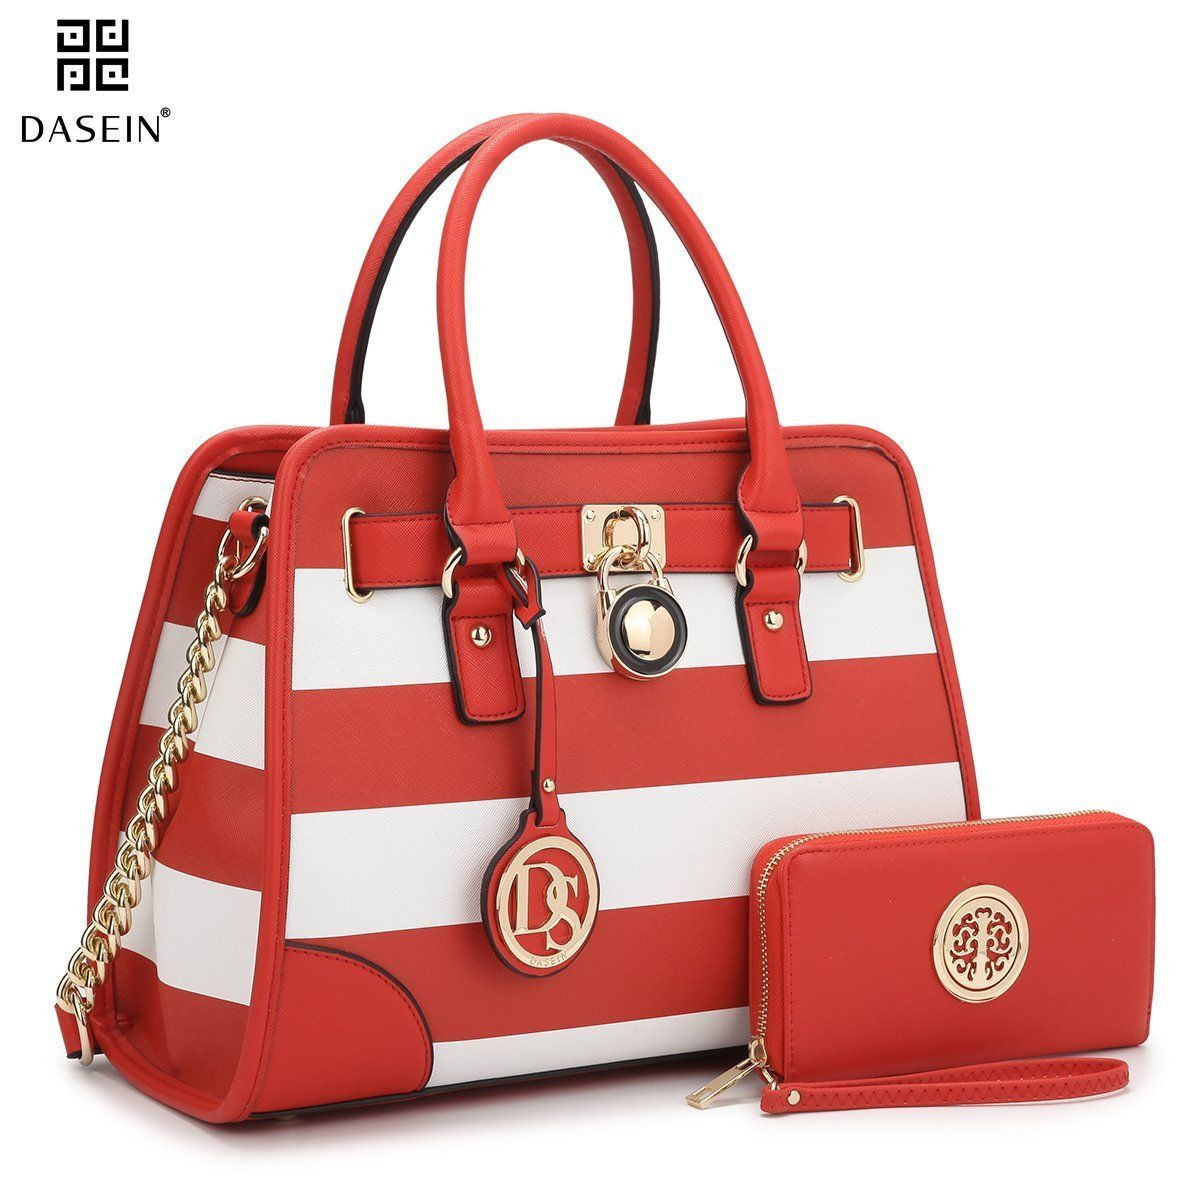 Image result for Dasein Women's Designer Handbags Padlock Belted Satchel Bags Top Handle Handbag Purse Shoulder Bag w/Matching Wallet